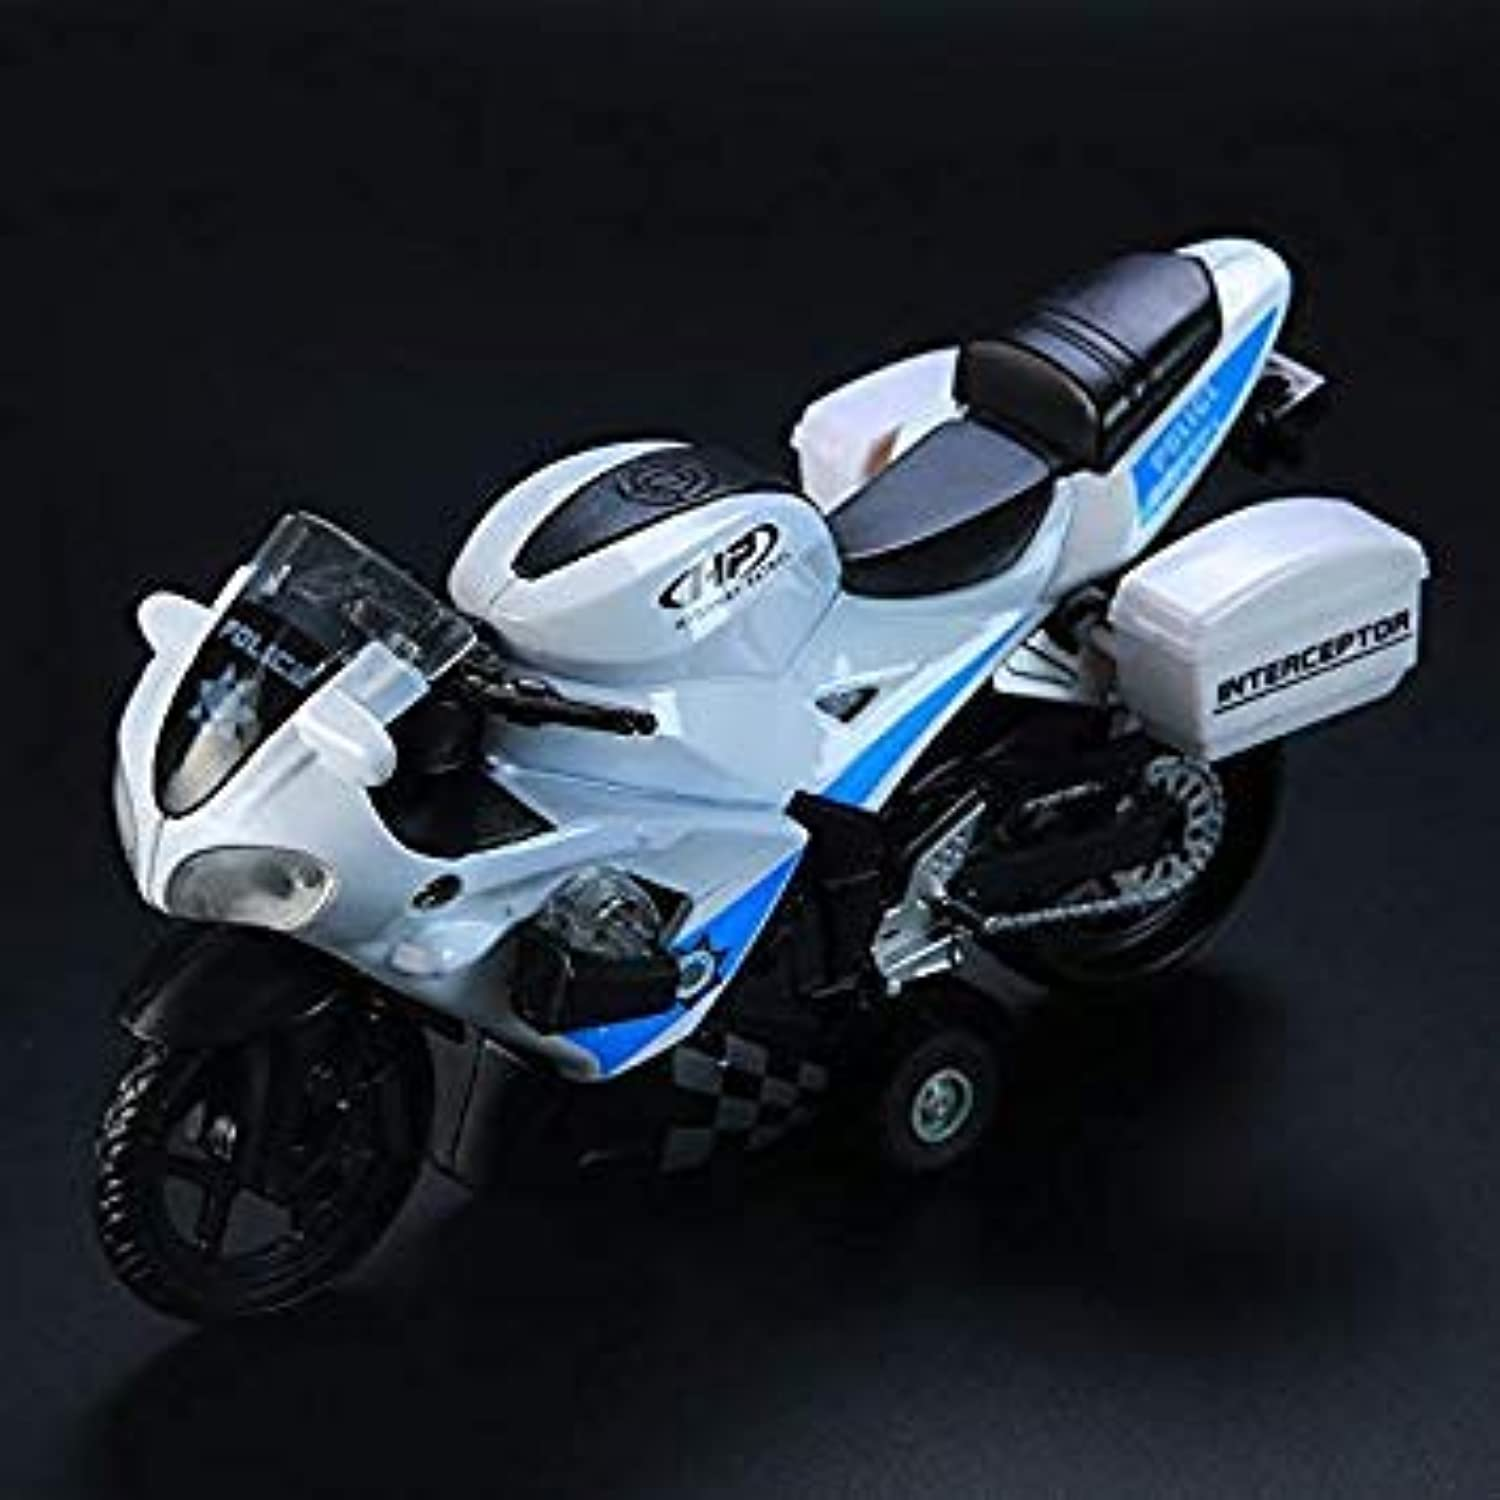 14 Types ATV Motorcycle Scooter Locomotive Vehicles Vehicles Vehicles Model for Kids Birthday Christmas Gifts Kids Boy Car Model Toys Play Props Jiche Poli d25f02